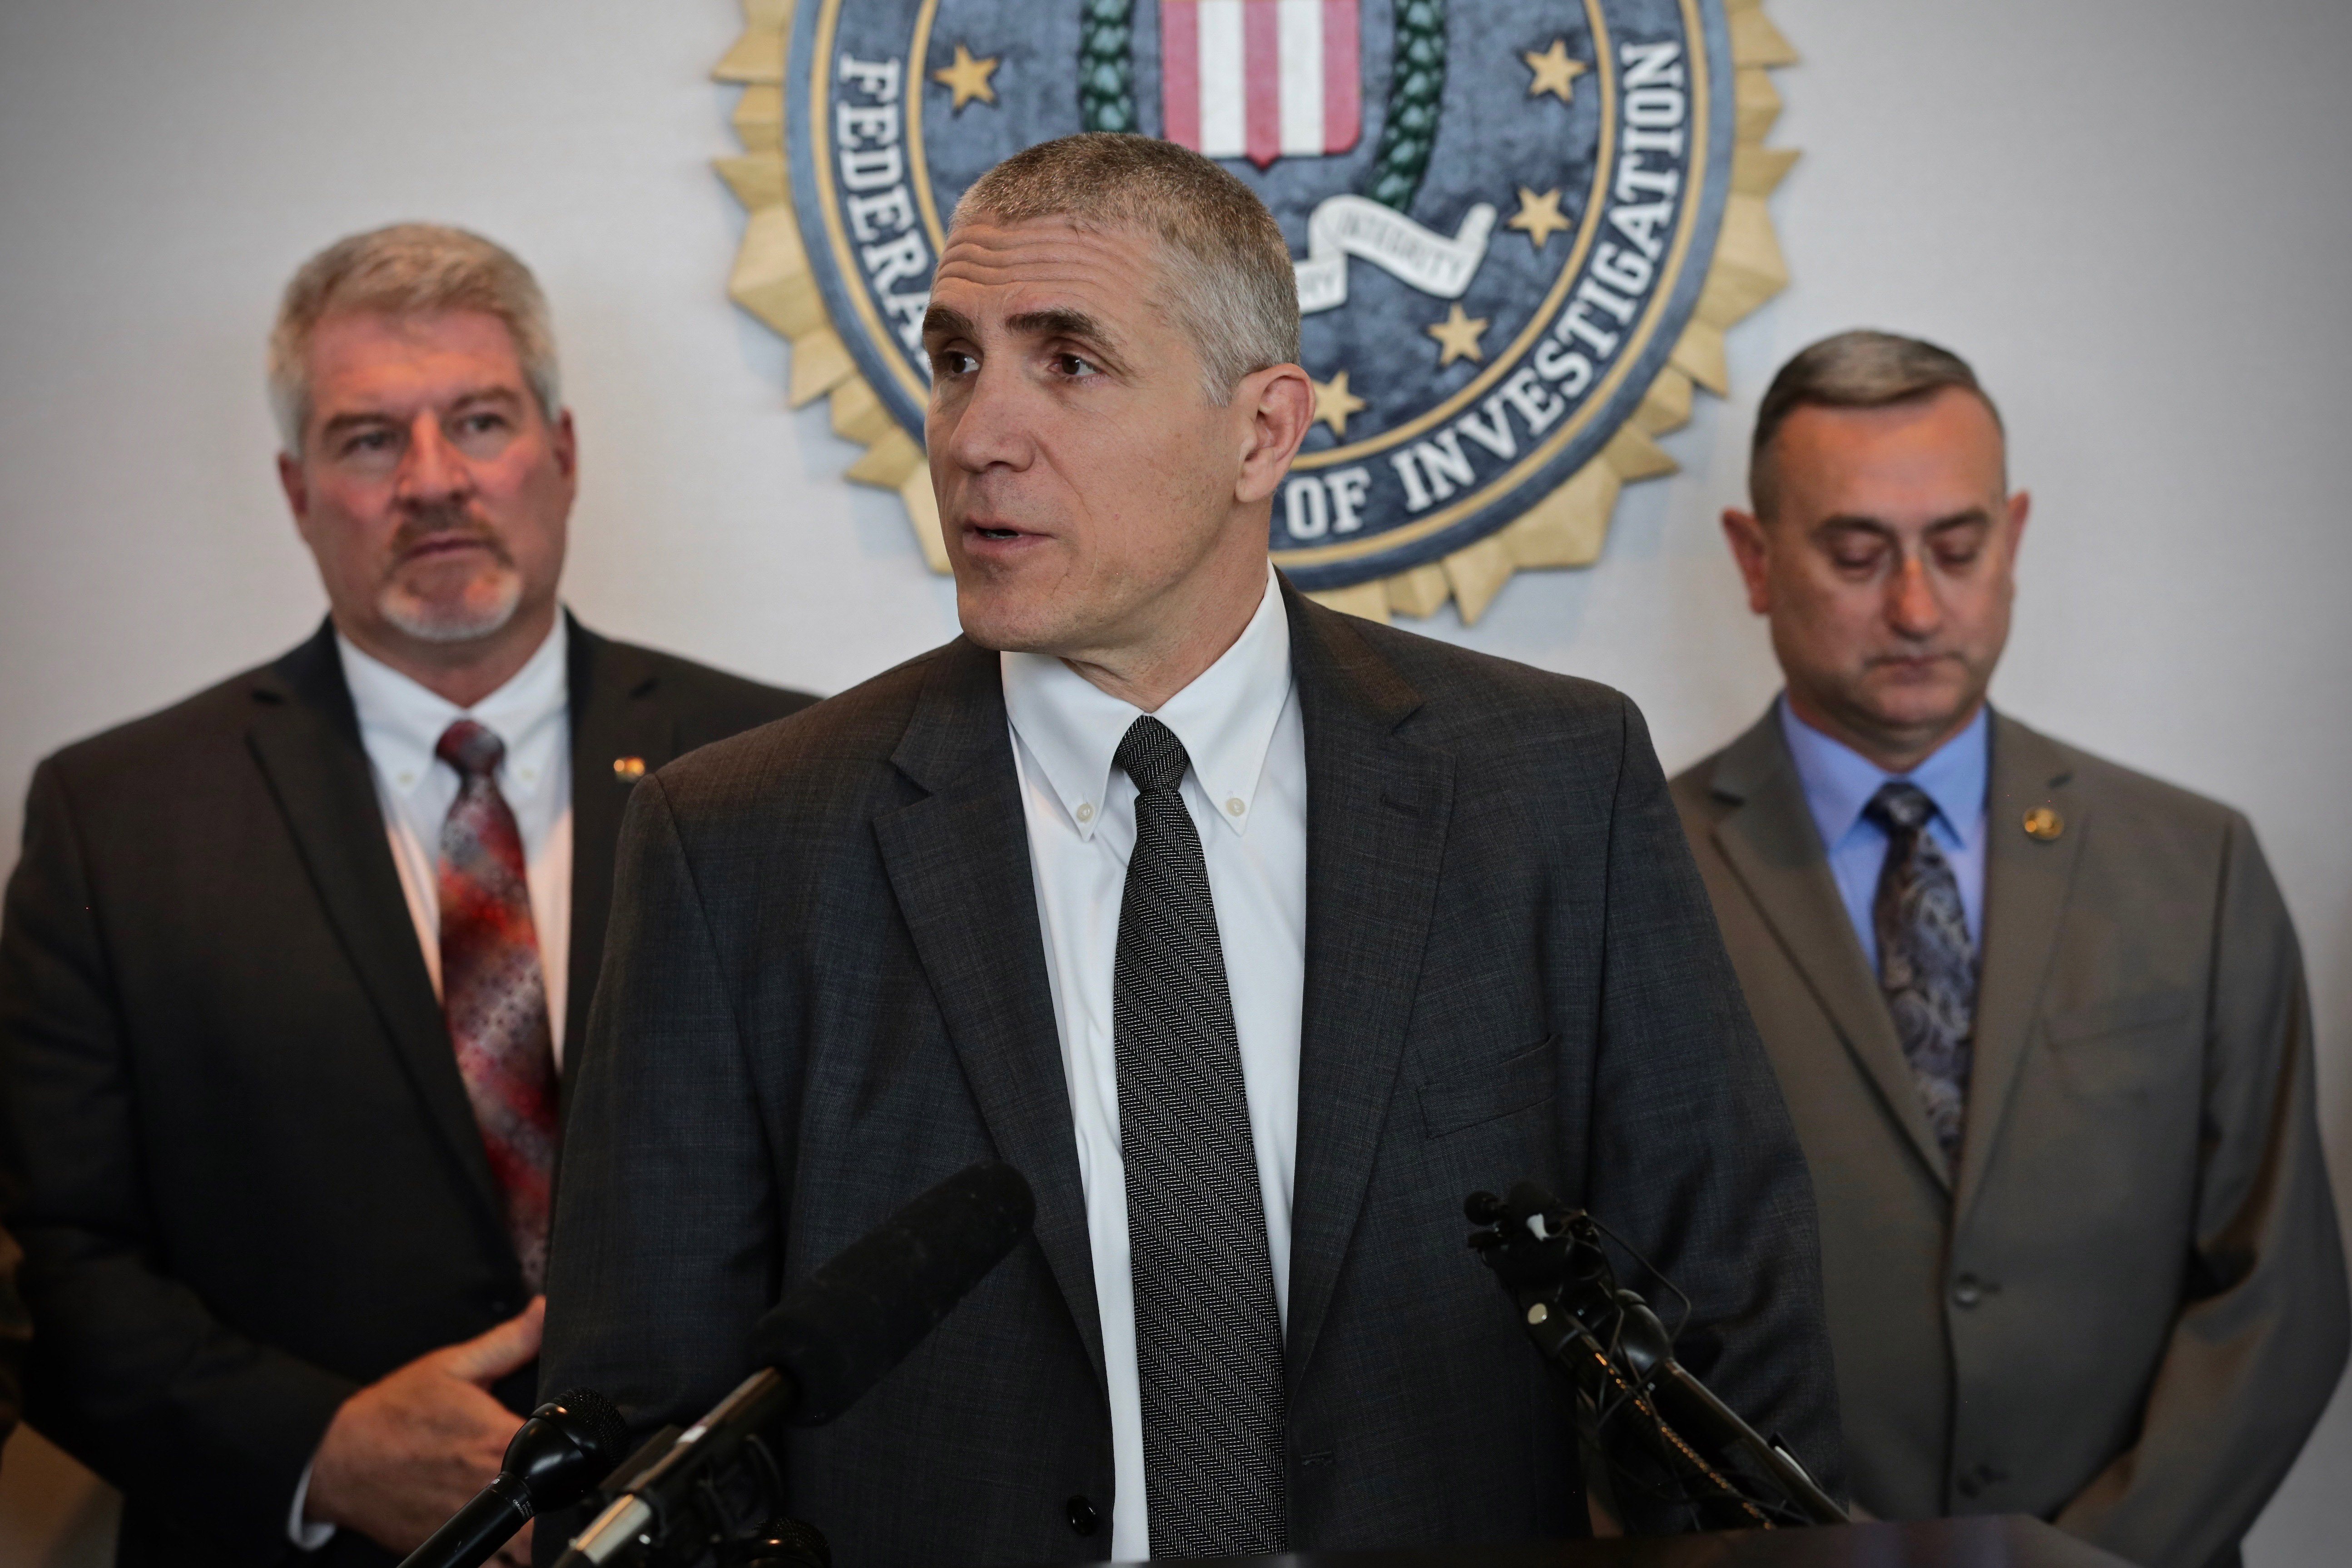 FBI Special Agent in Charge Dean Phillips talks to reporters at the agency's Denver field office about the tips that put them on the trail of Sol Pais of Florida, and how authorities eventually found her body near Echo Lake below MountEvans, April 17, 2019.